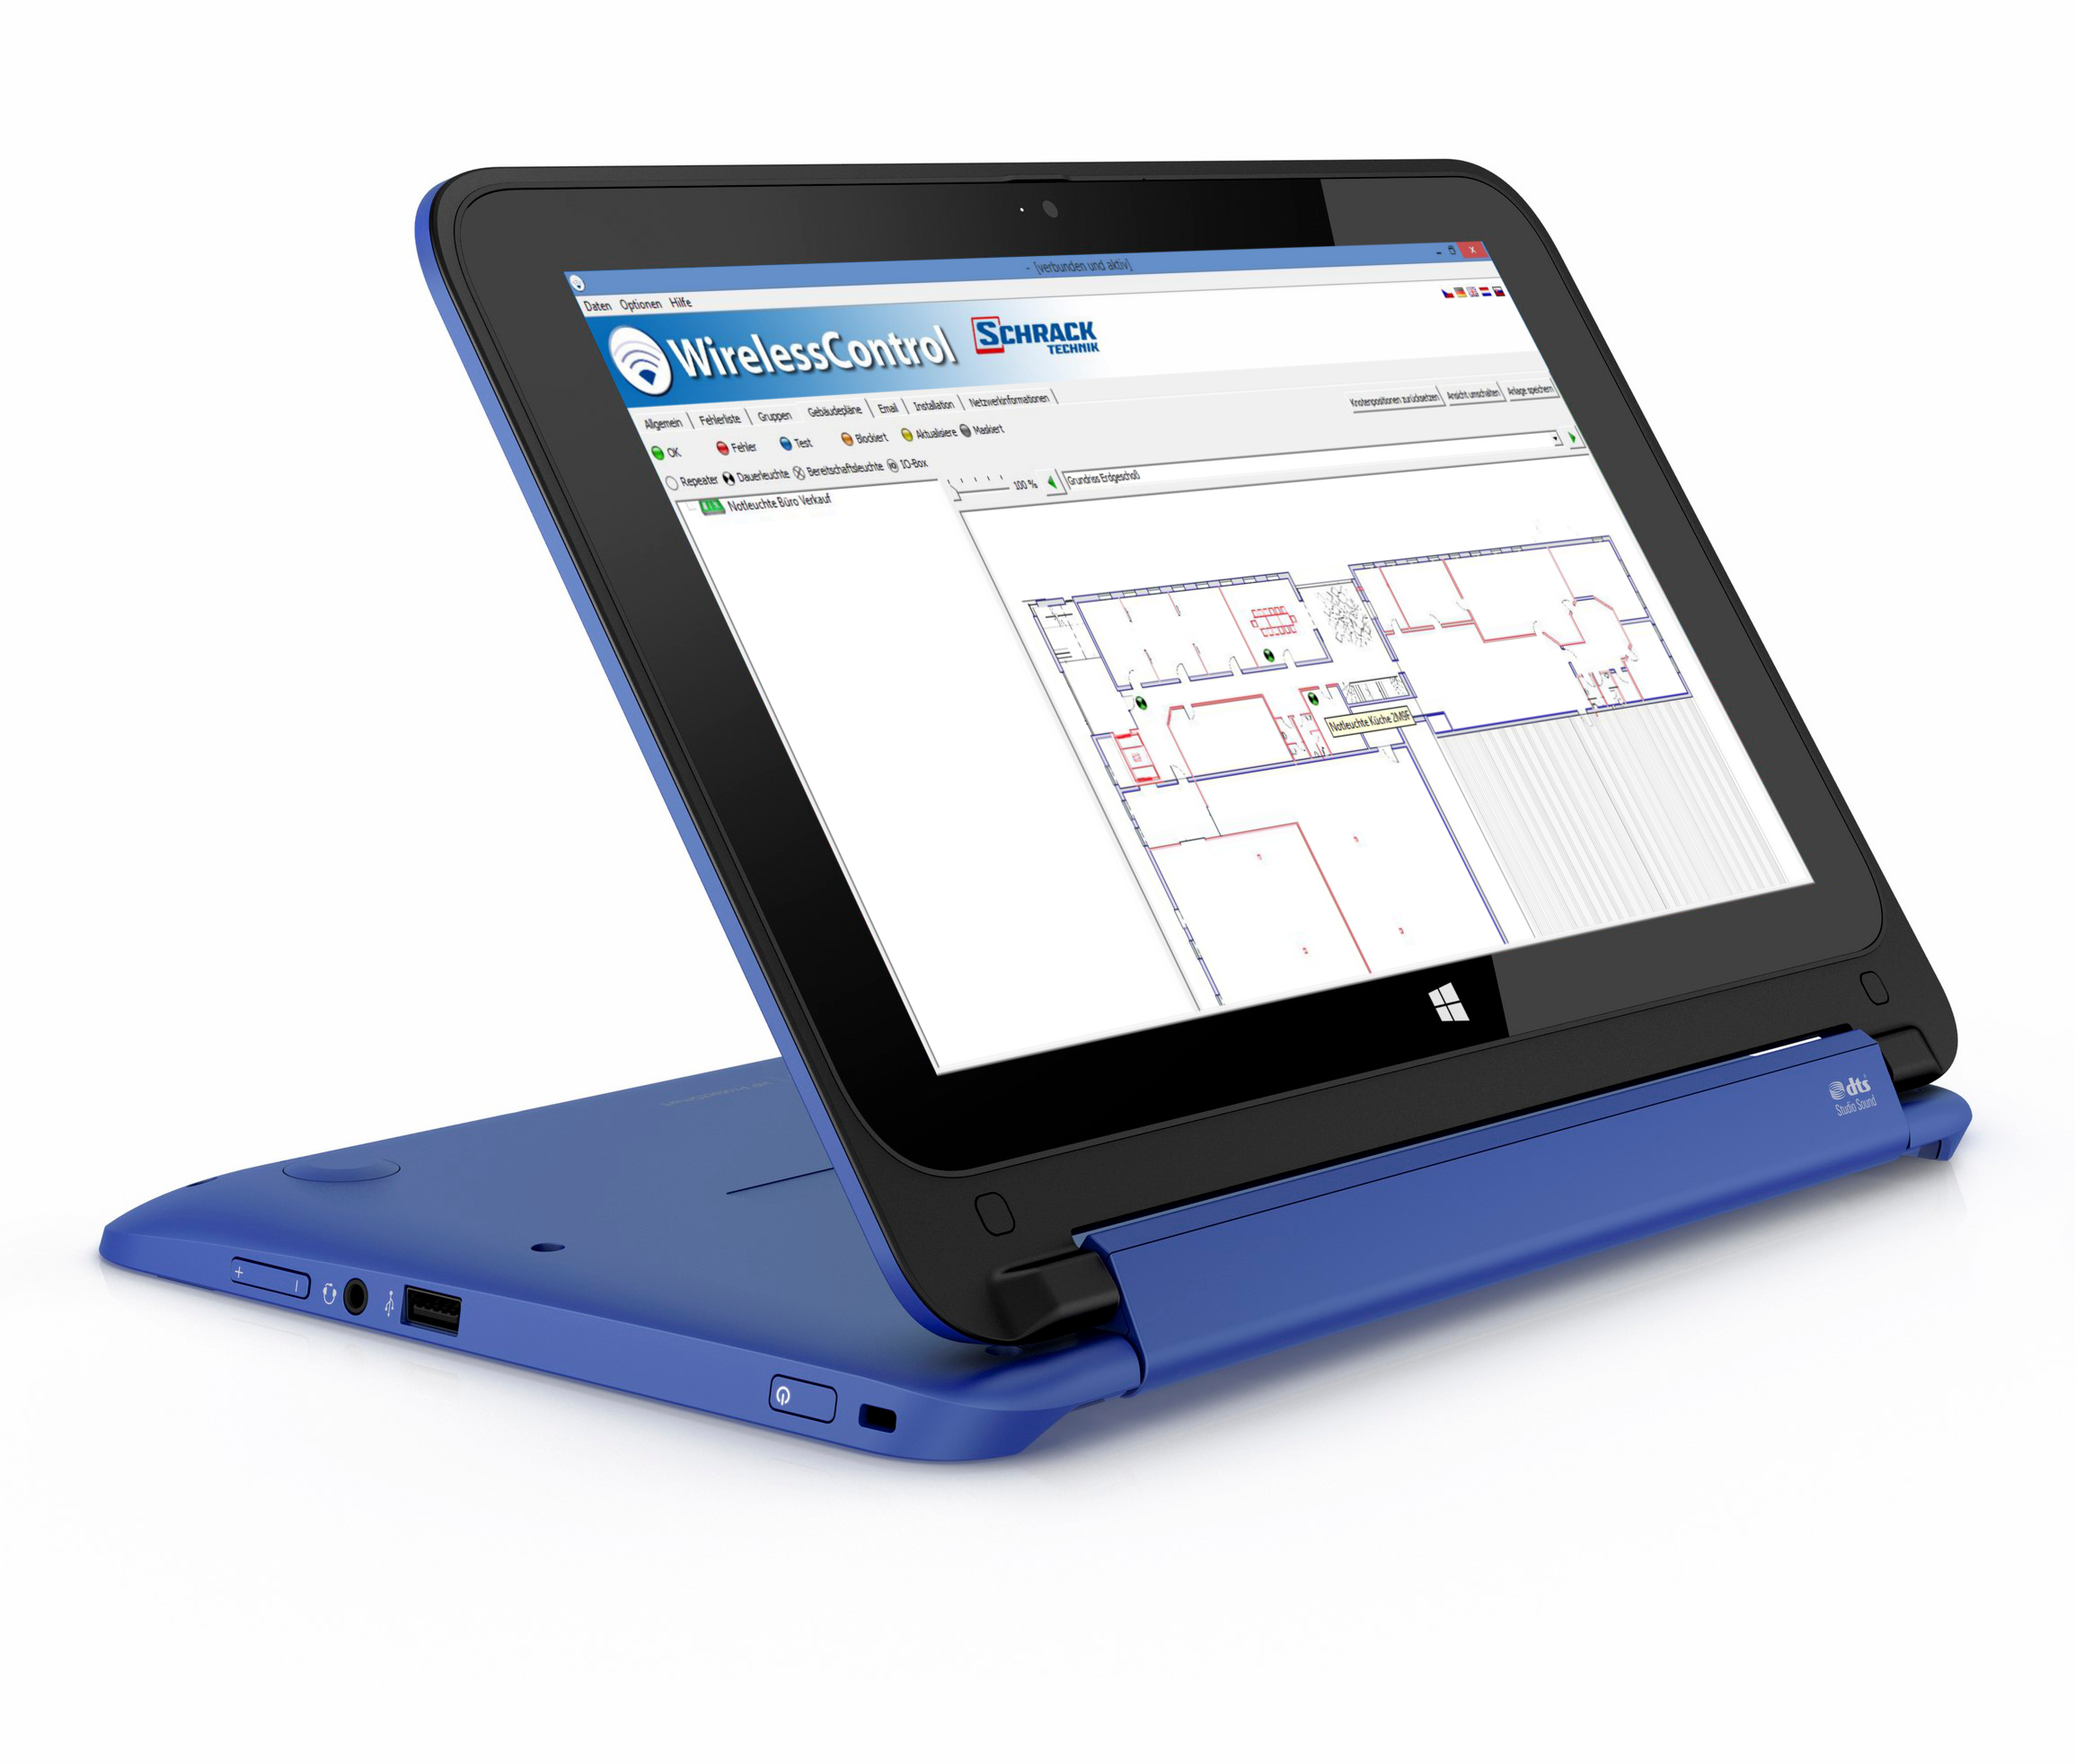 Netbook Touch inkl. WirelessControl Software